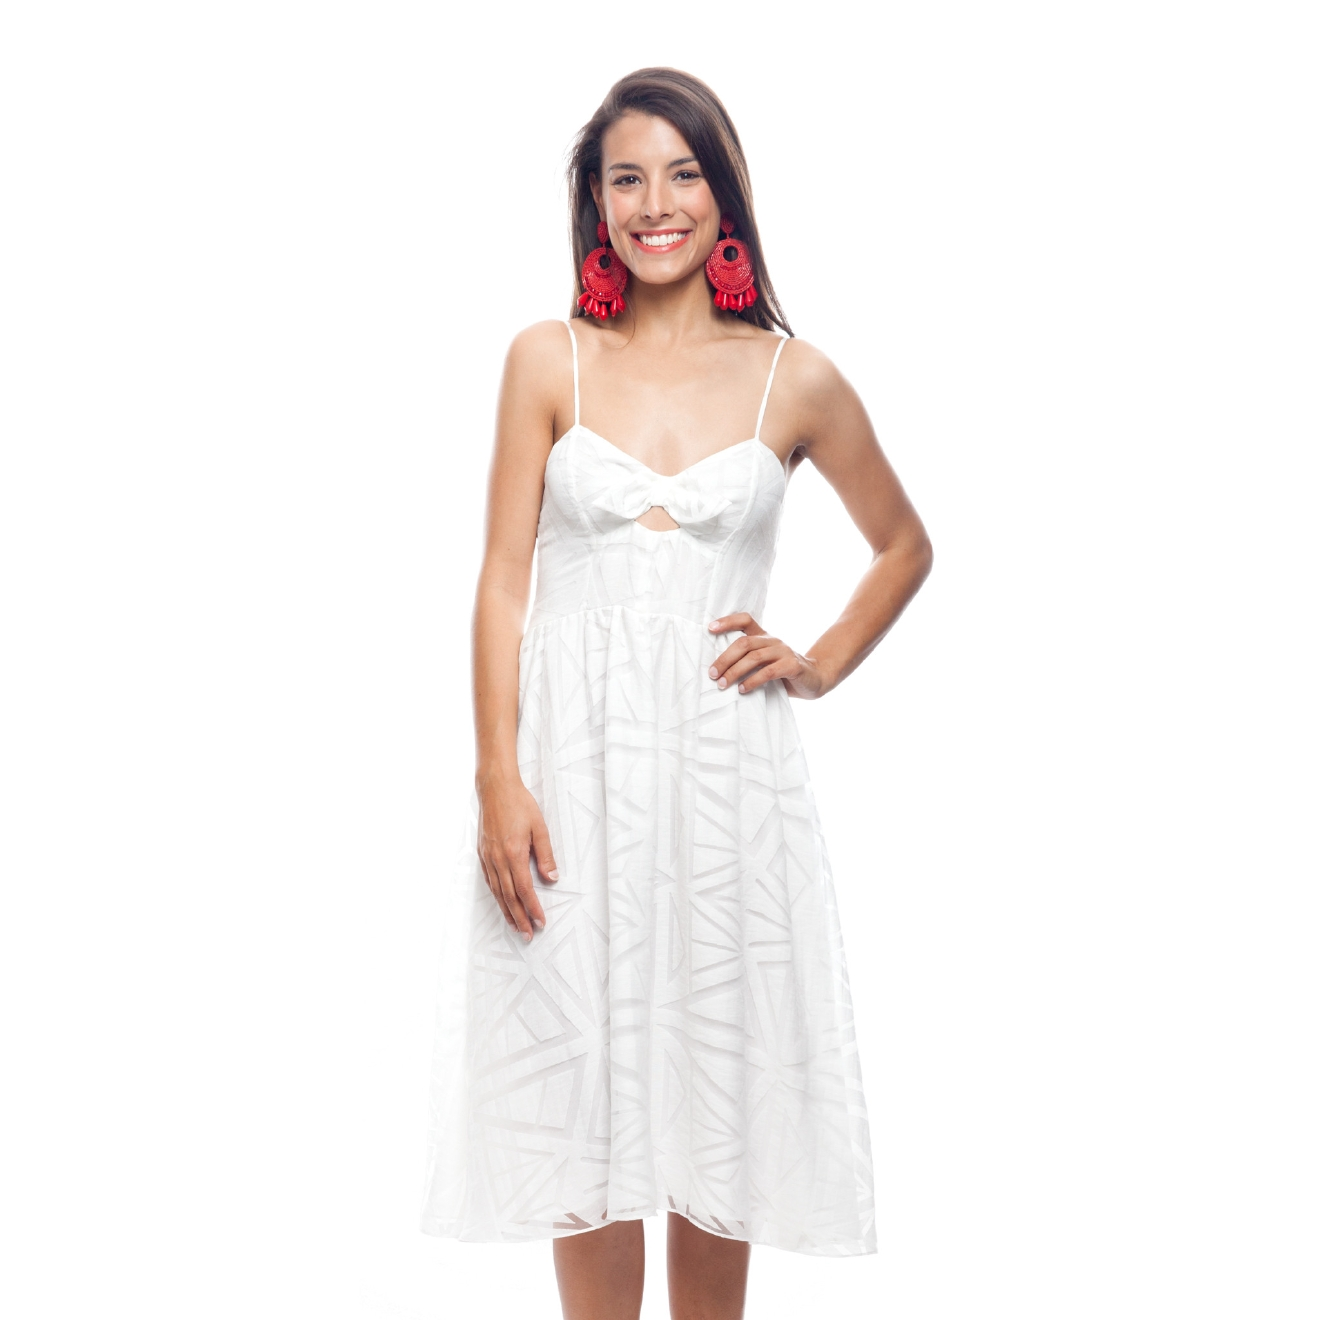 Parker White Miranda Dress, $186, tuckernuck.com (Image: Courtesy Tuckernuck)